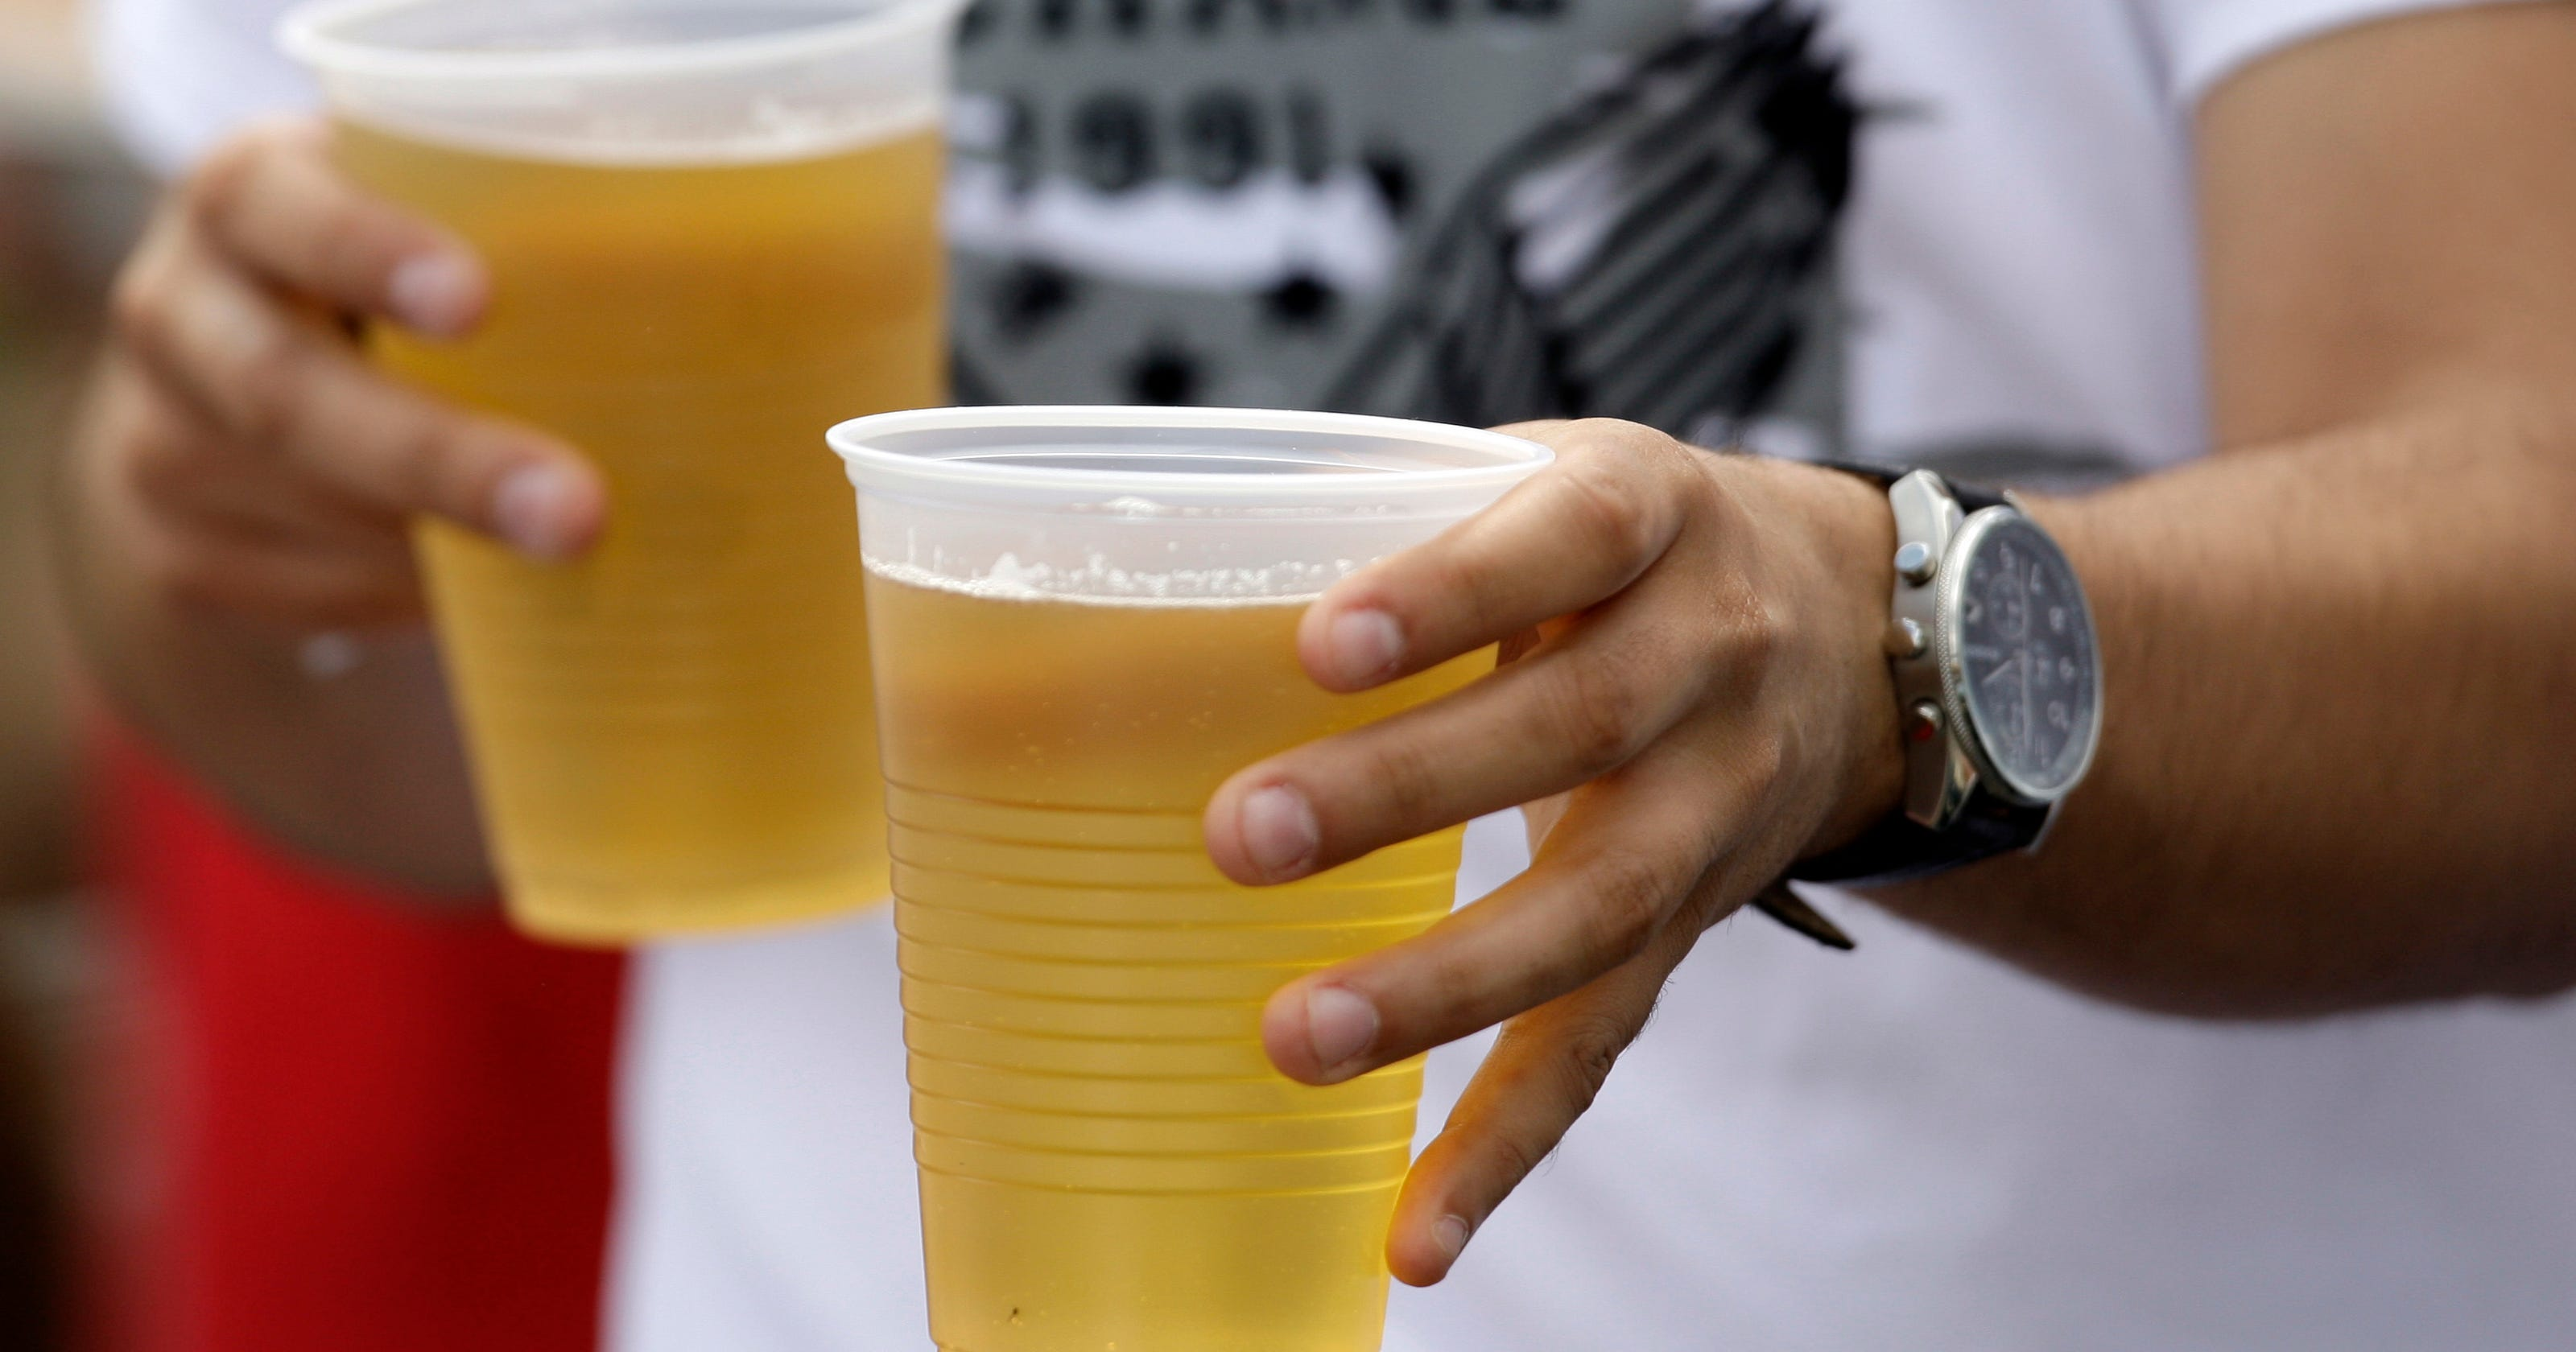 Study Parents Who Give Their Teenagers Alcohol Are Inviting Trouble